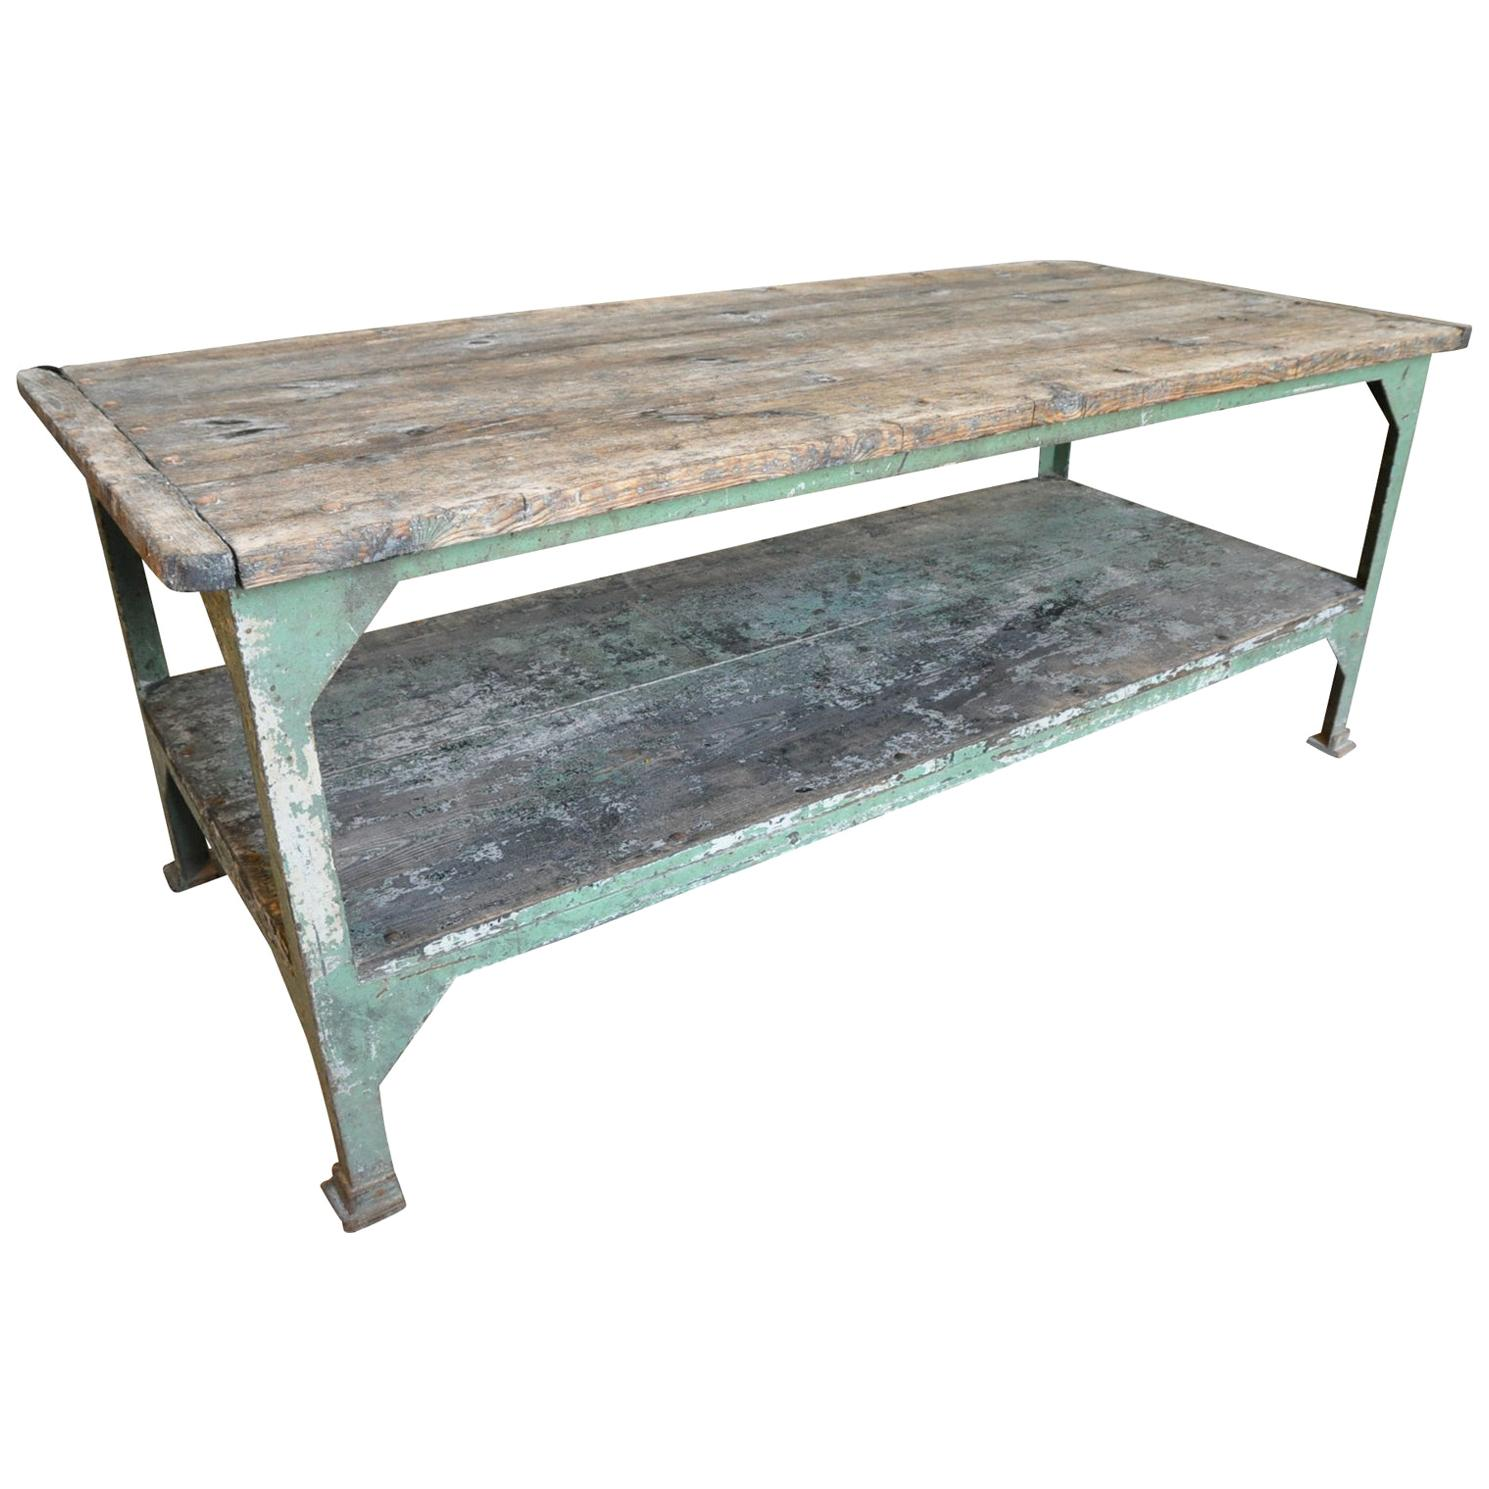 Early 20th Century French Work Table, Draper's Table